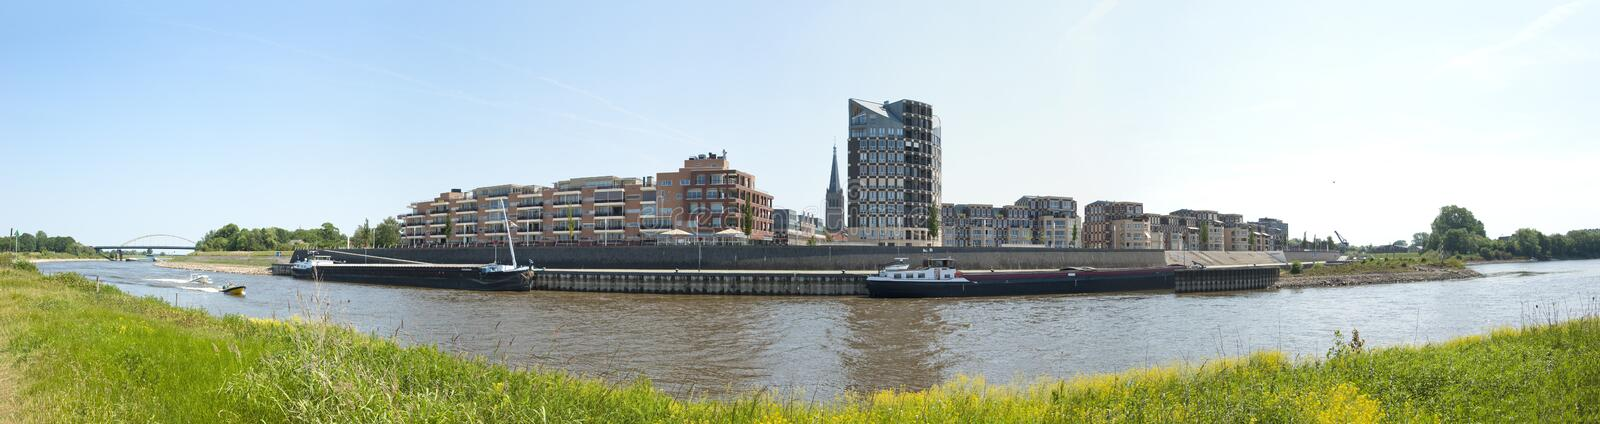 Download Panoramic View Of The City Doesburg, The Netherlands Stock Image - Image: 38028173